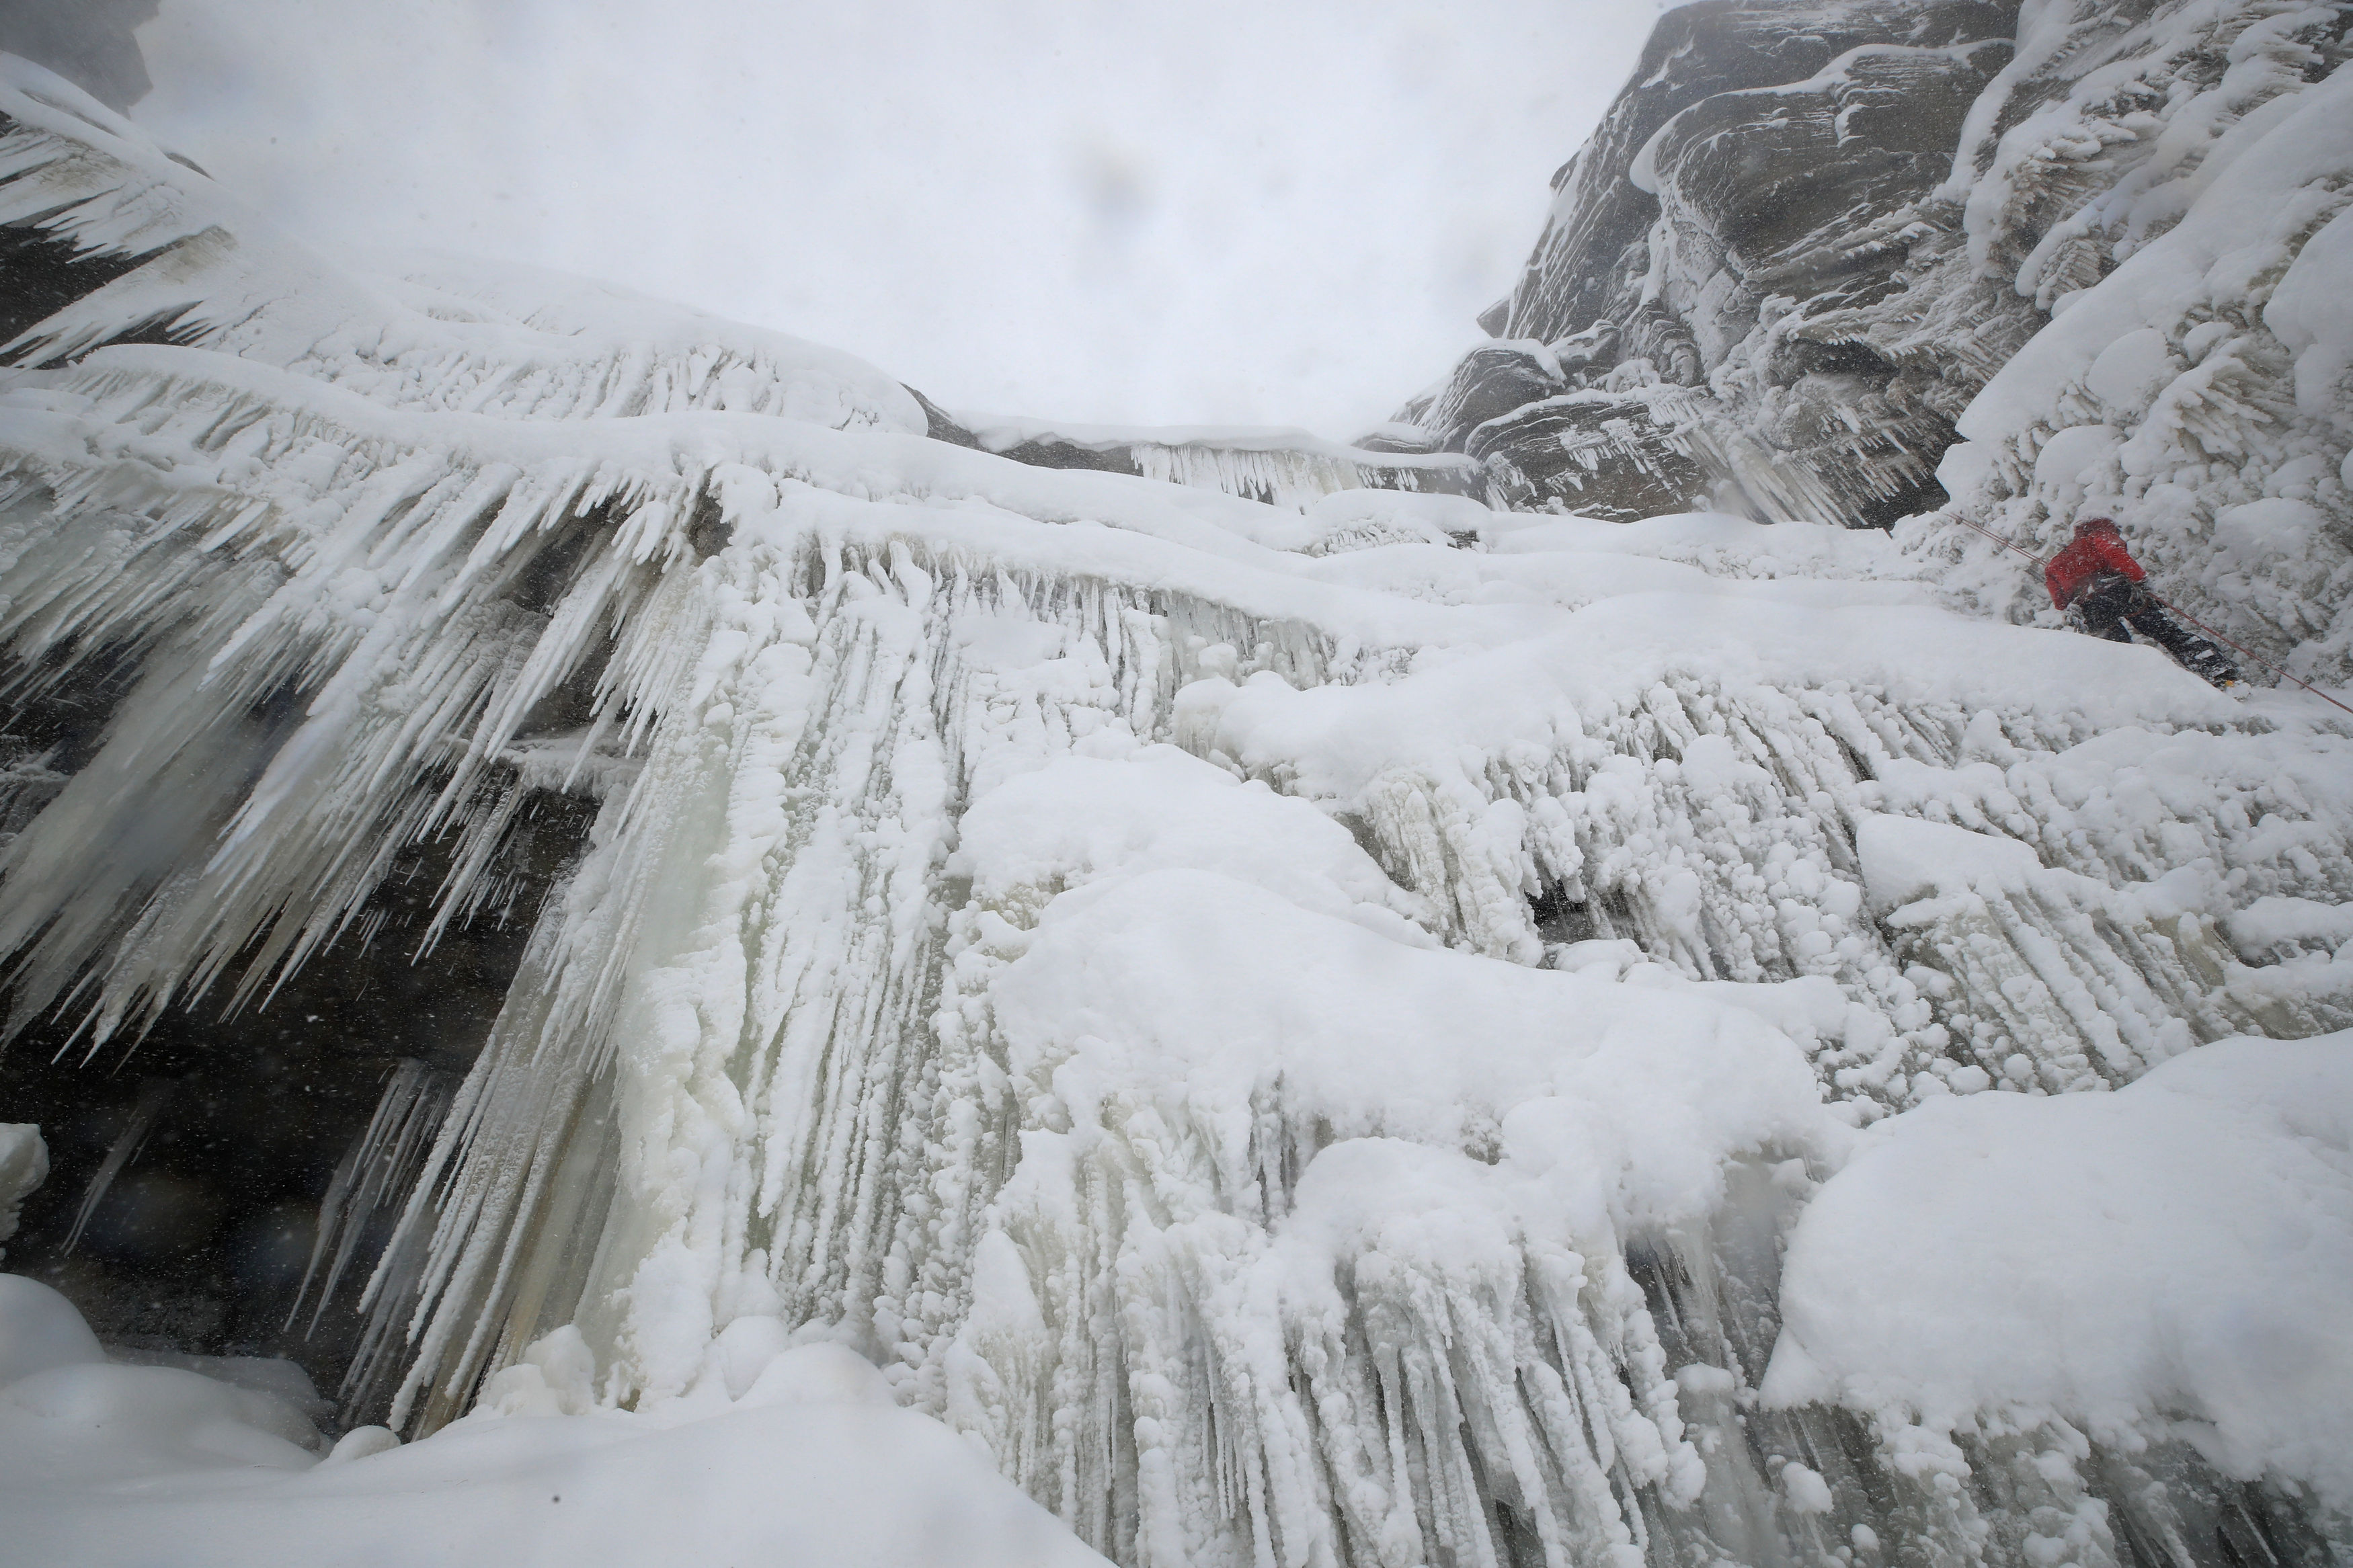 Ice climbers on the downfall at Kinder Downfall, High Peak in Derbyshire